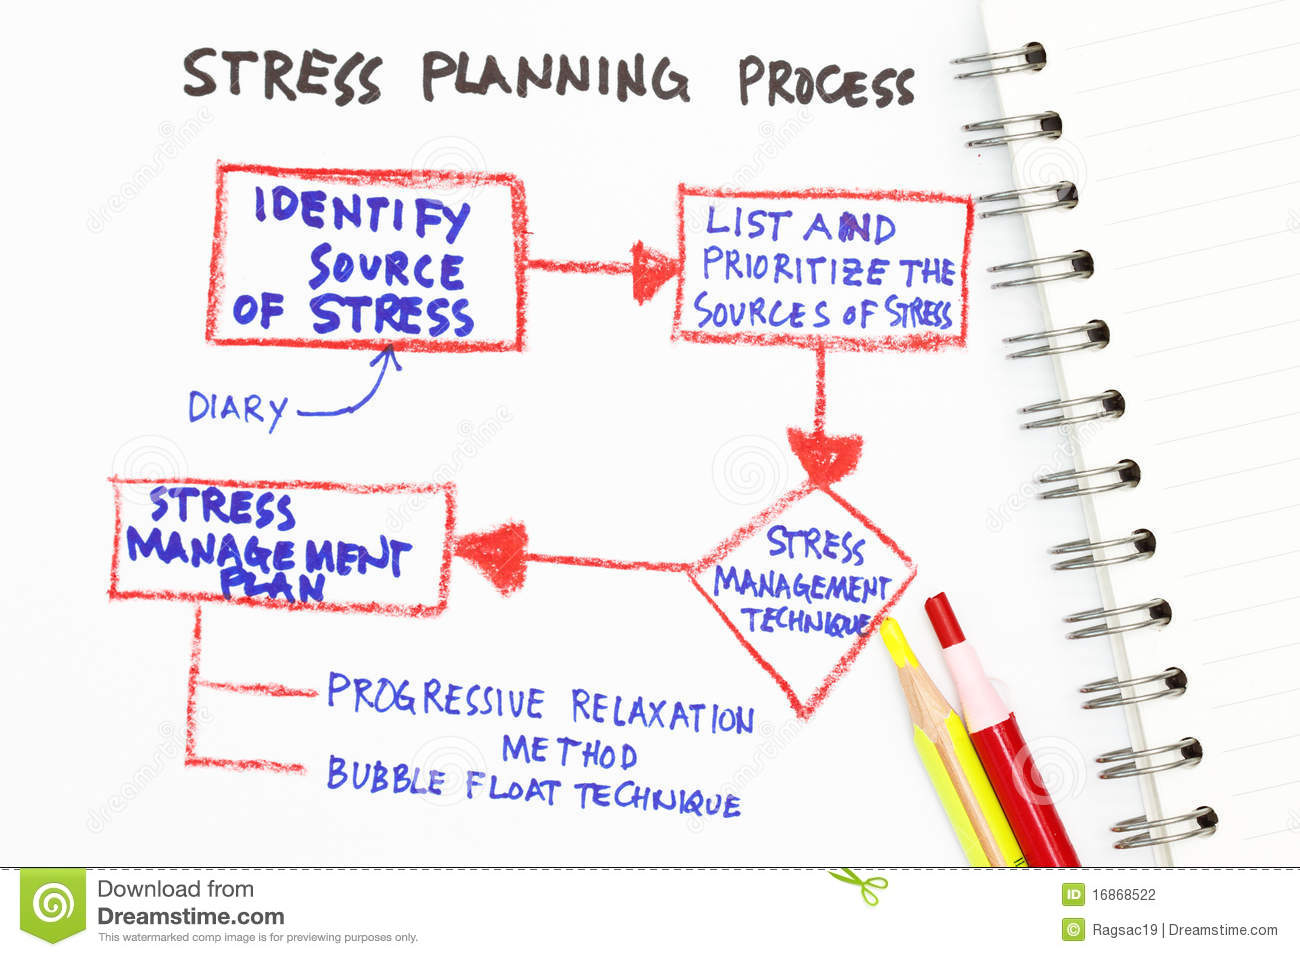 Stress Management Abstract With Chart On Stress Management Plan